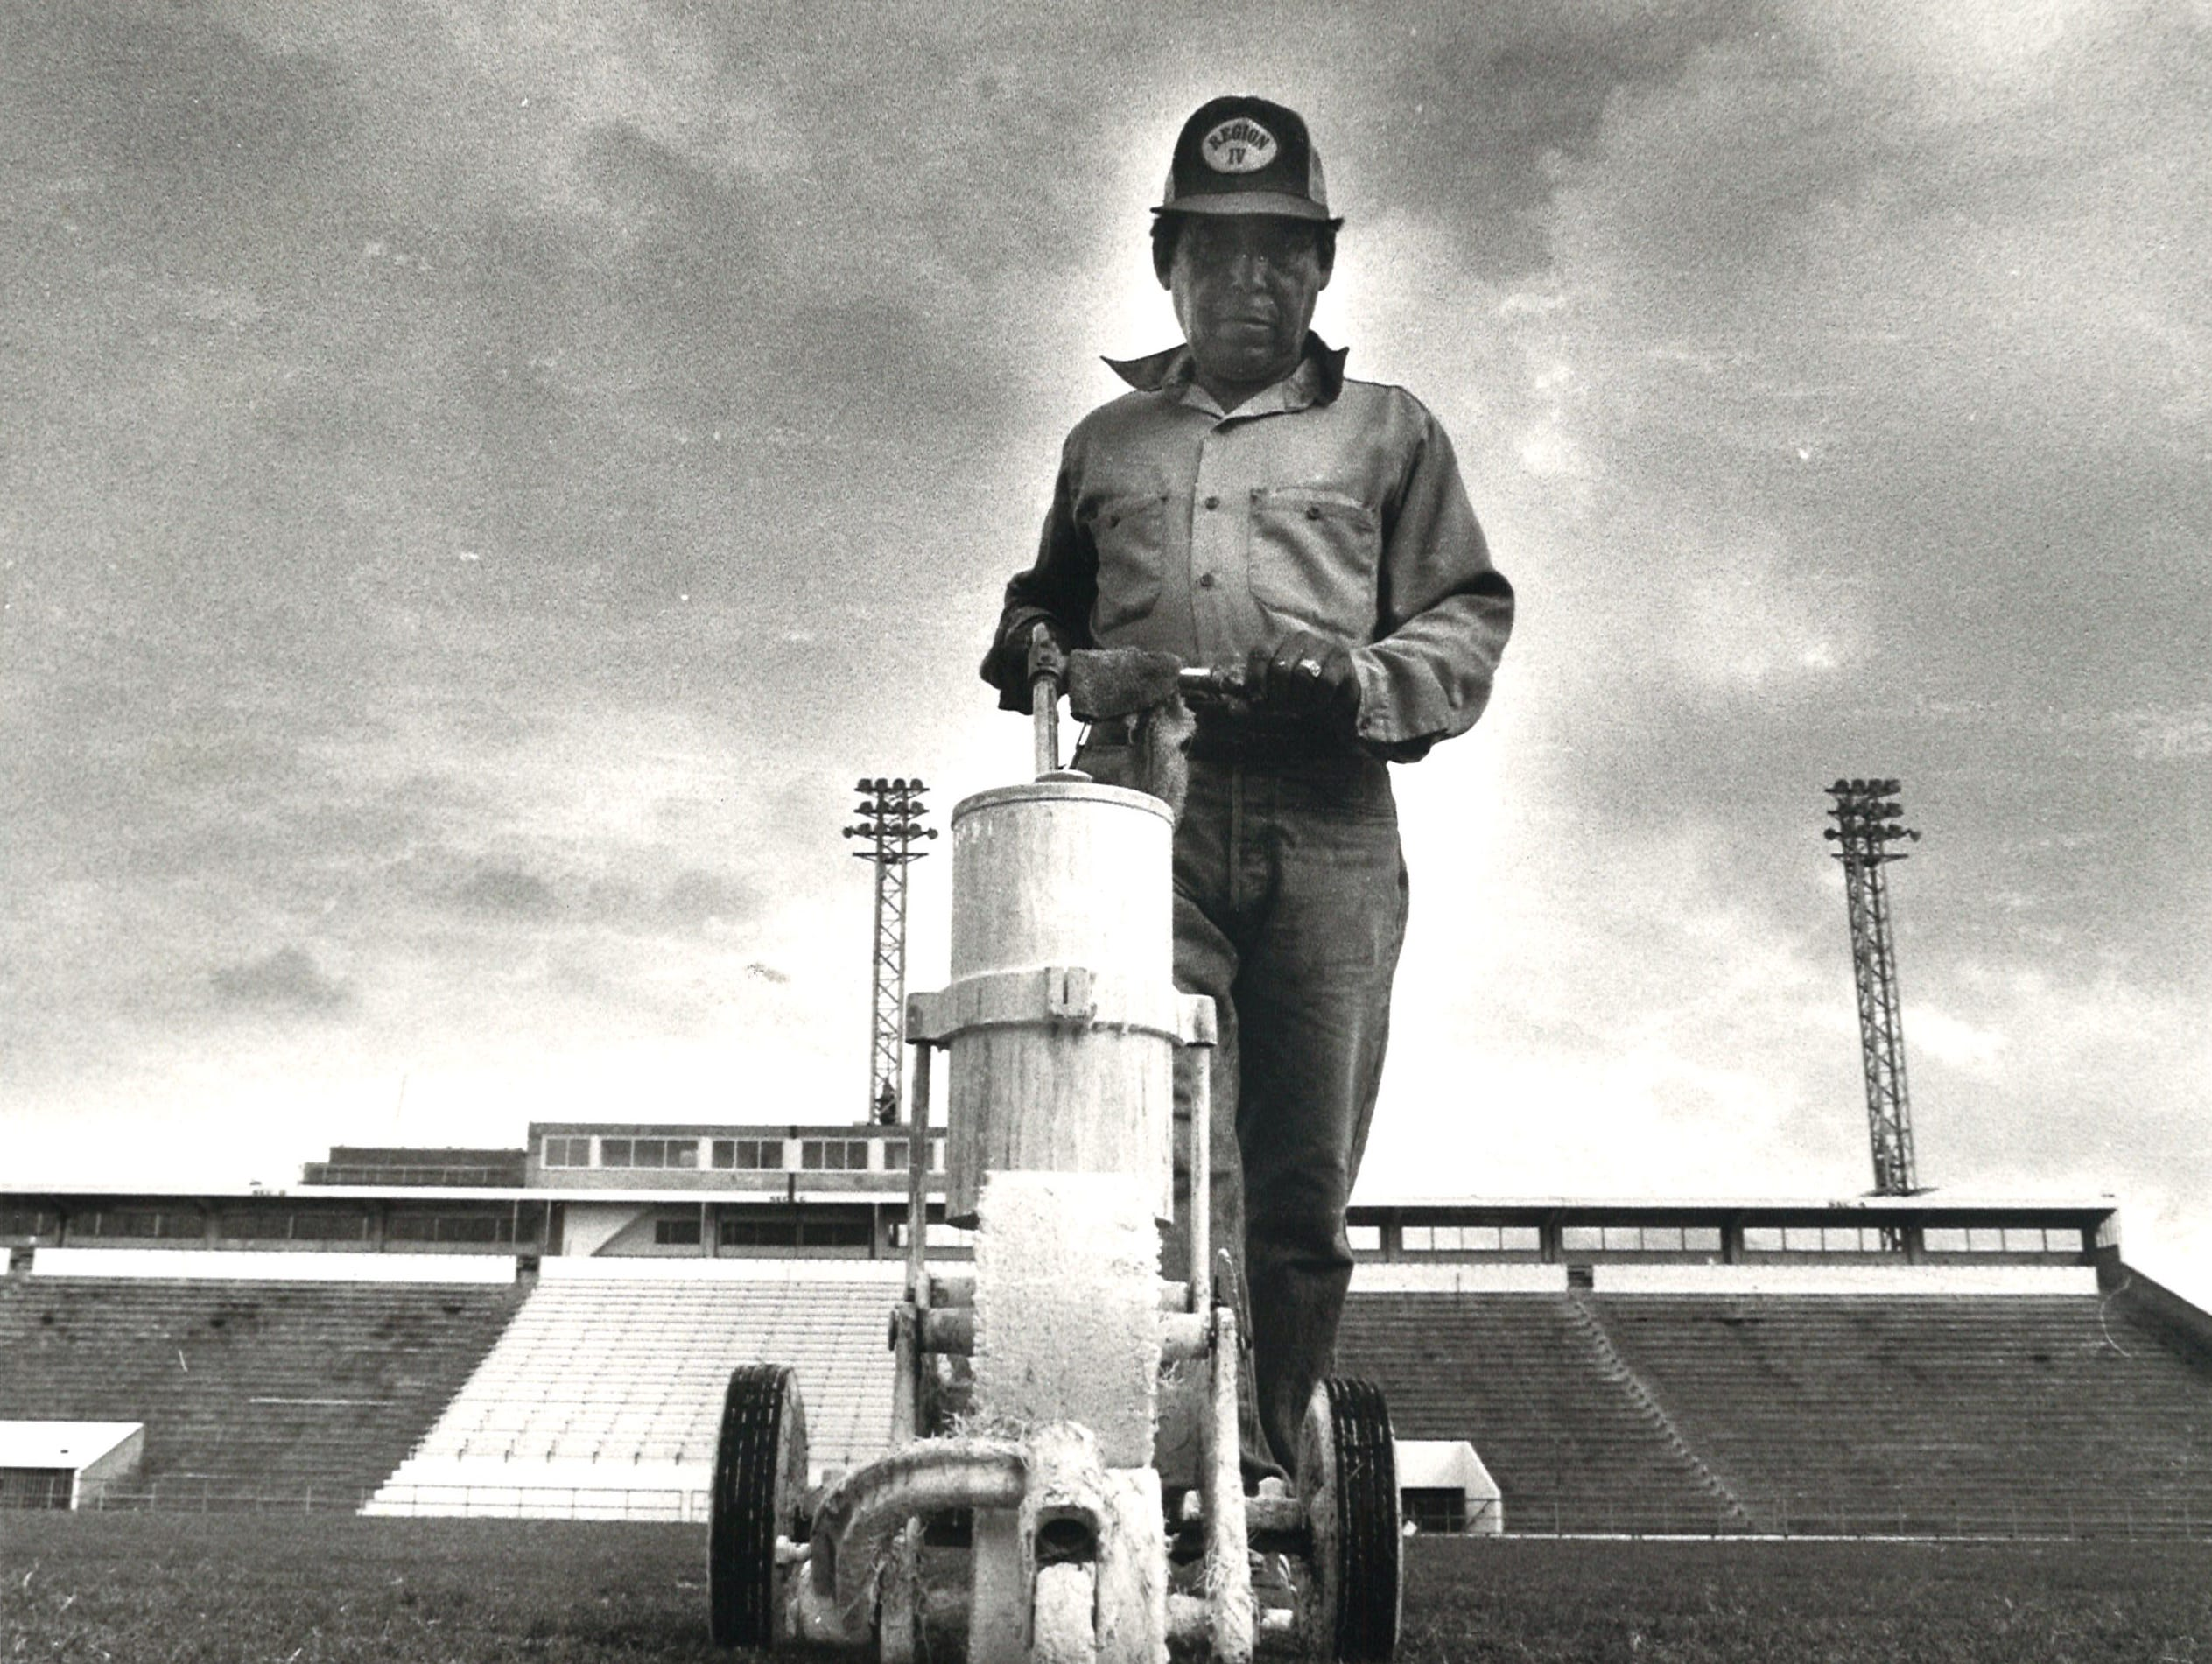 Shorty Guerrero helps prepare Buc Stadium for upcoming football games on Nov. 10, 1982. Guerrero was retired, but was asked to come back for the day to help out.